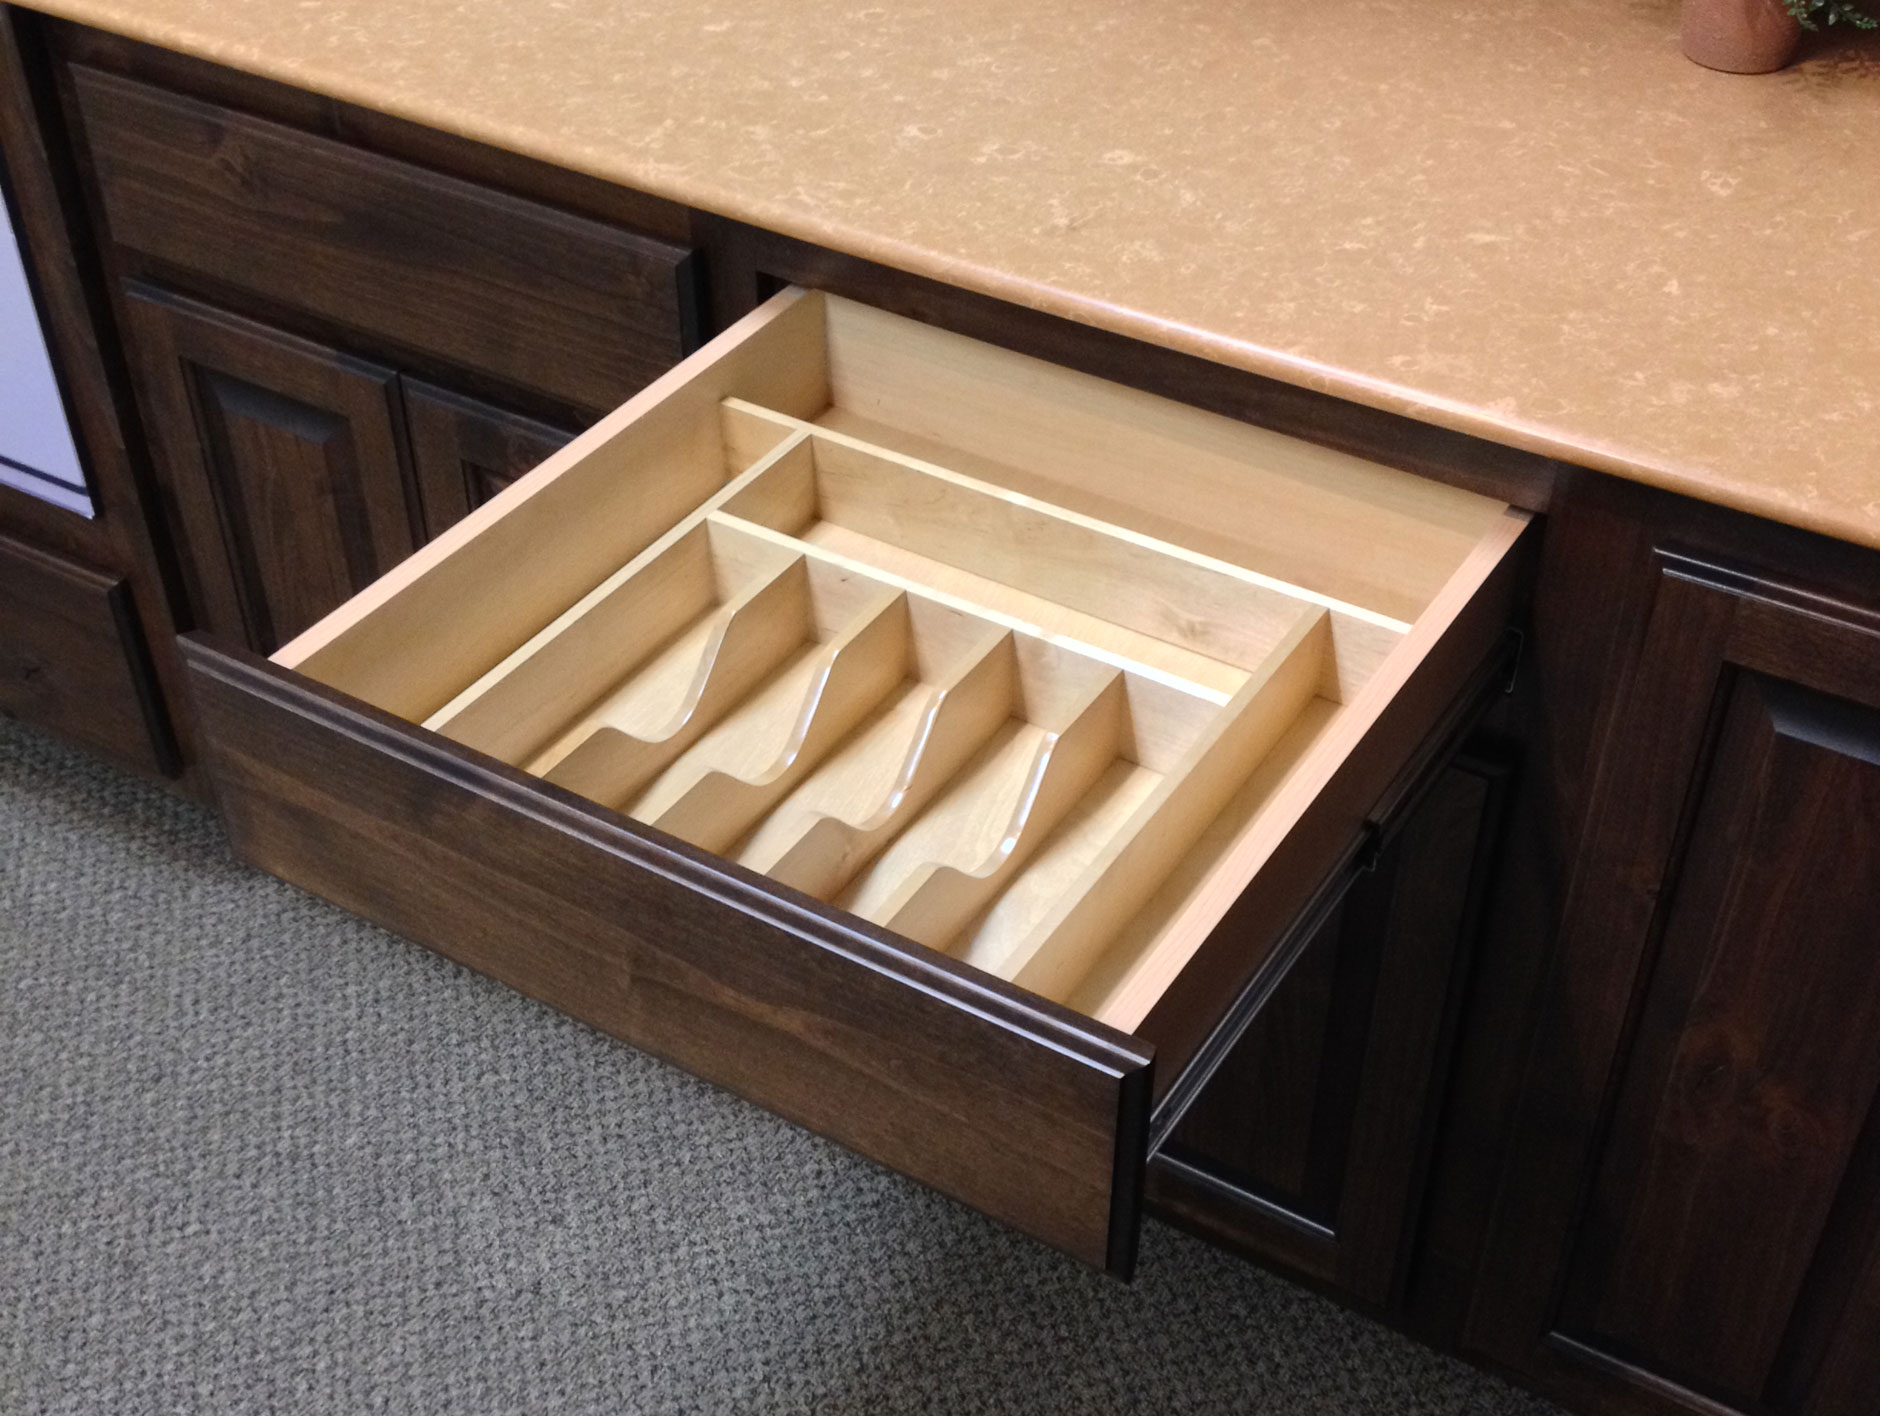 Cutlery and Silverware Insert